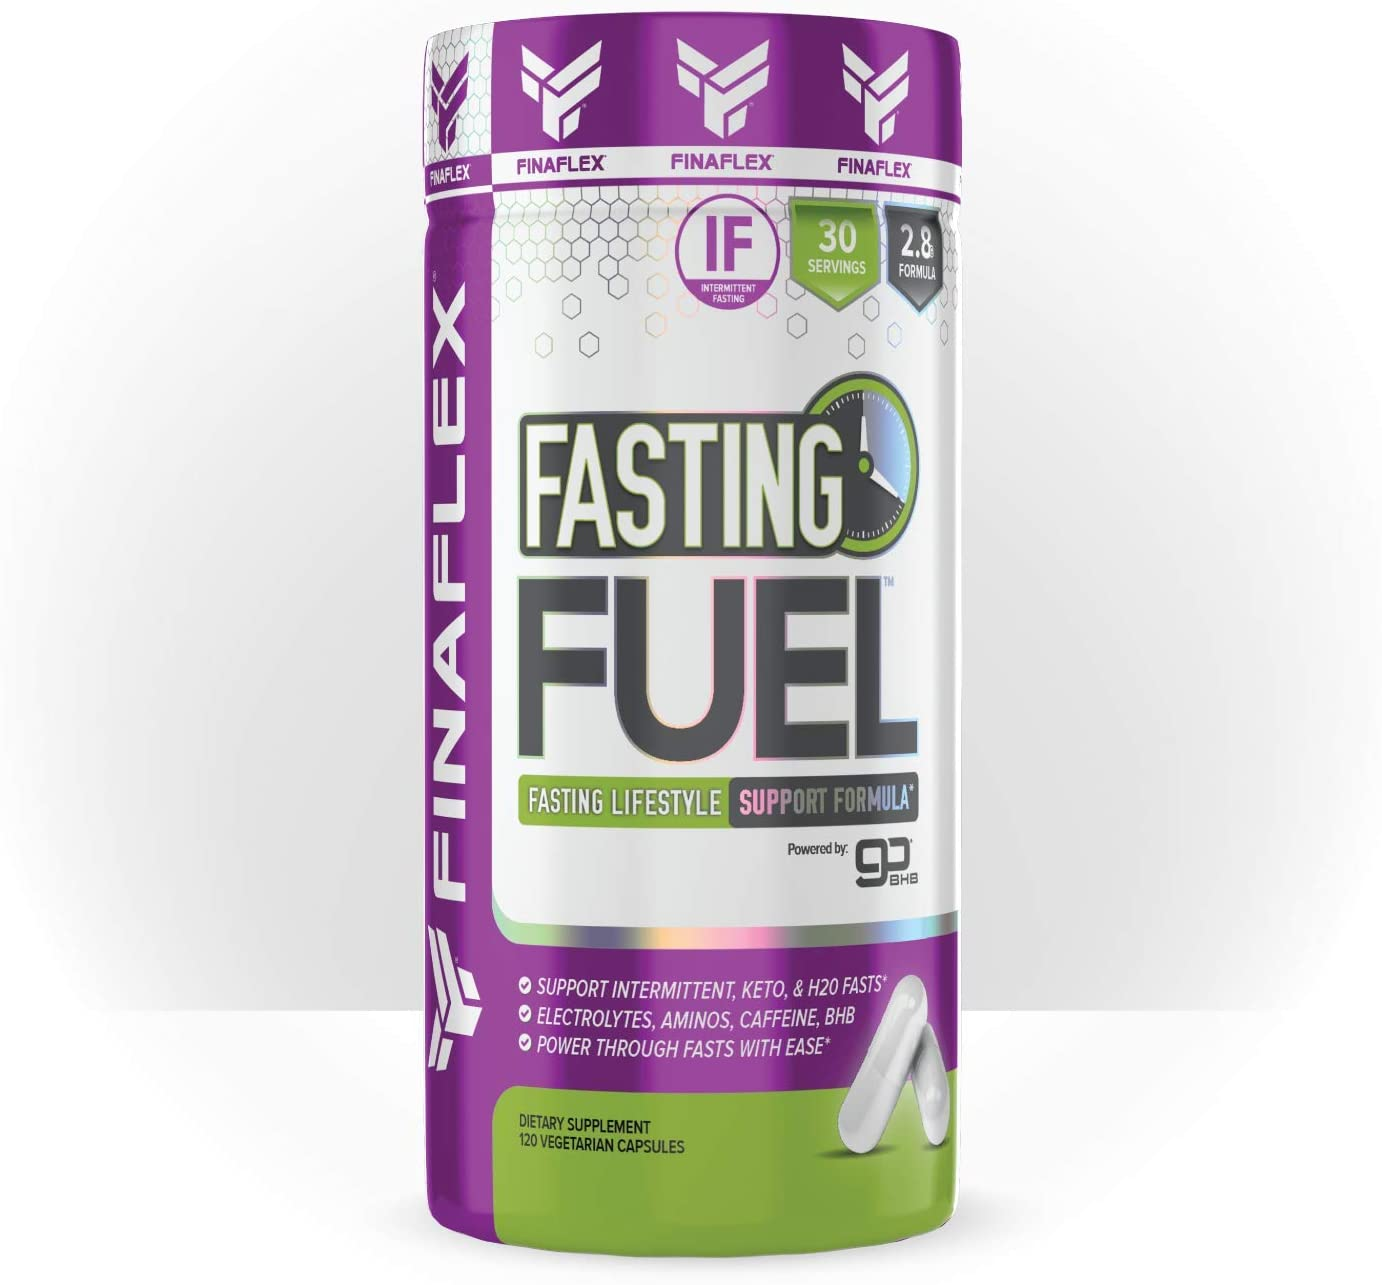 Fasting Fuel Support Intermittent, Keto, and Water Fasting, Electrolytes, Aminos, Caffeine, BHB, Power Through Fasts with Ease (120 Capsules)